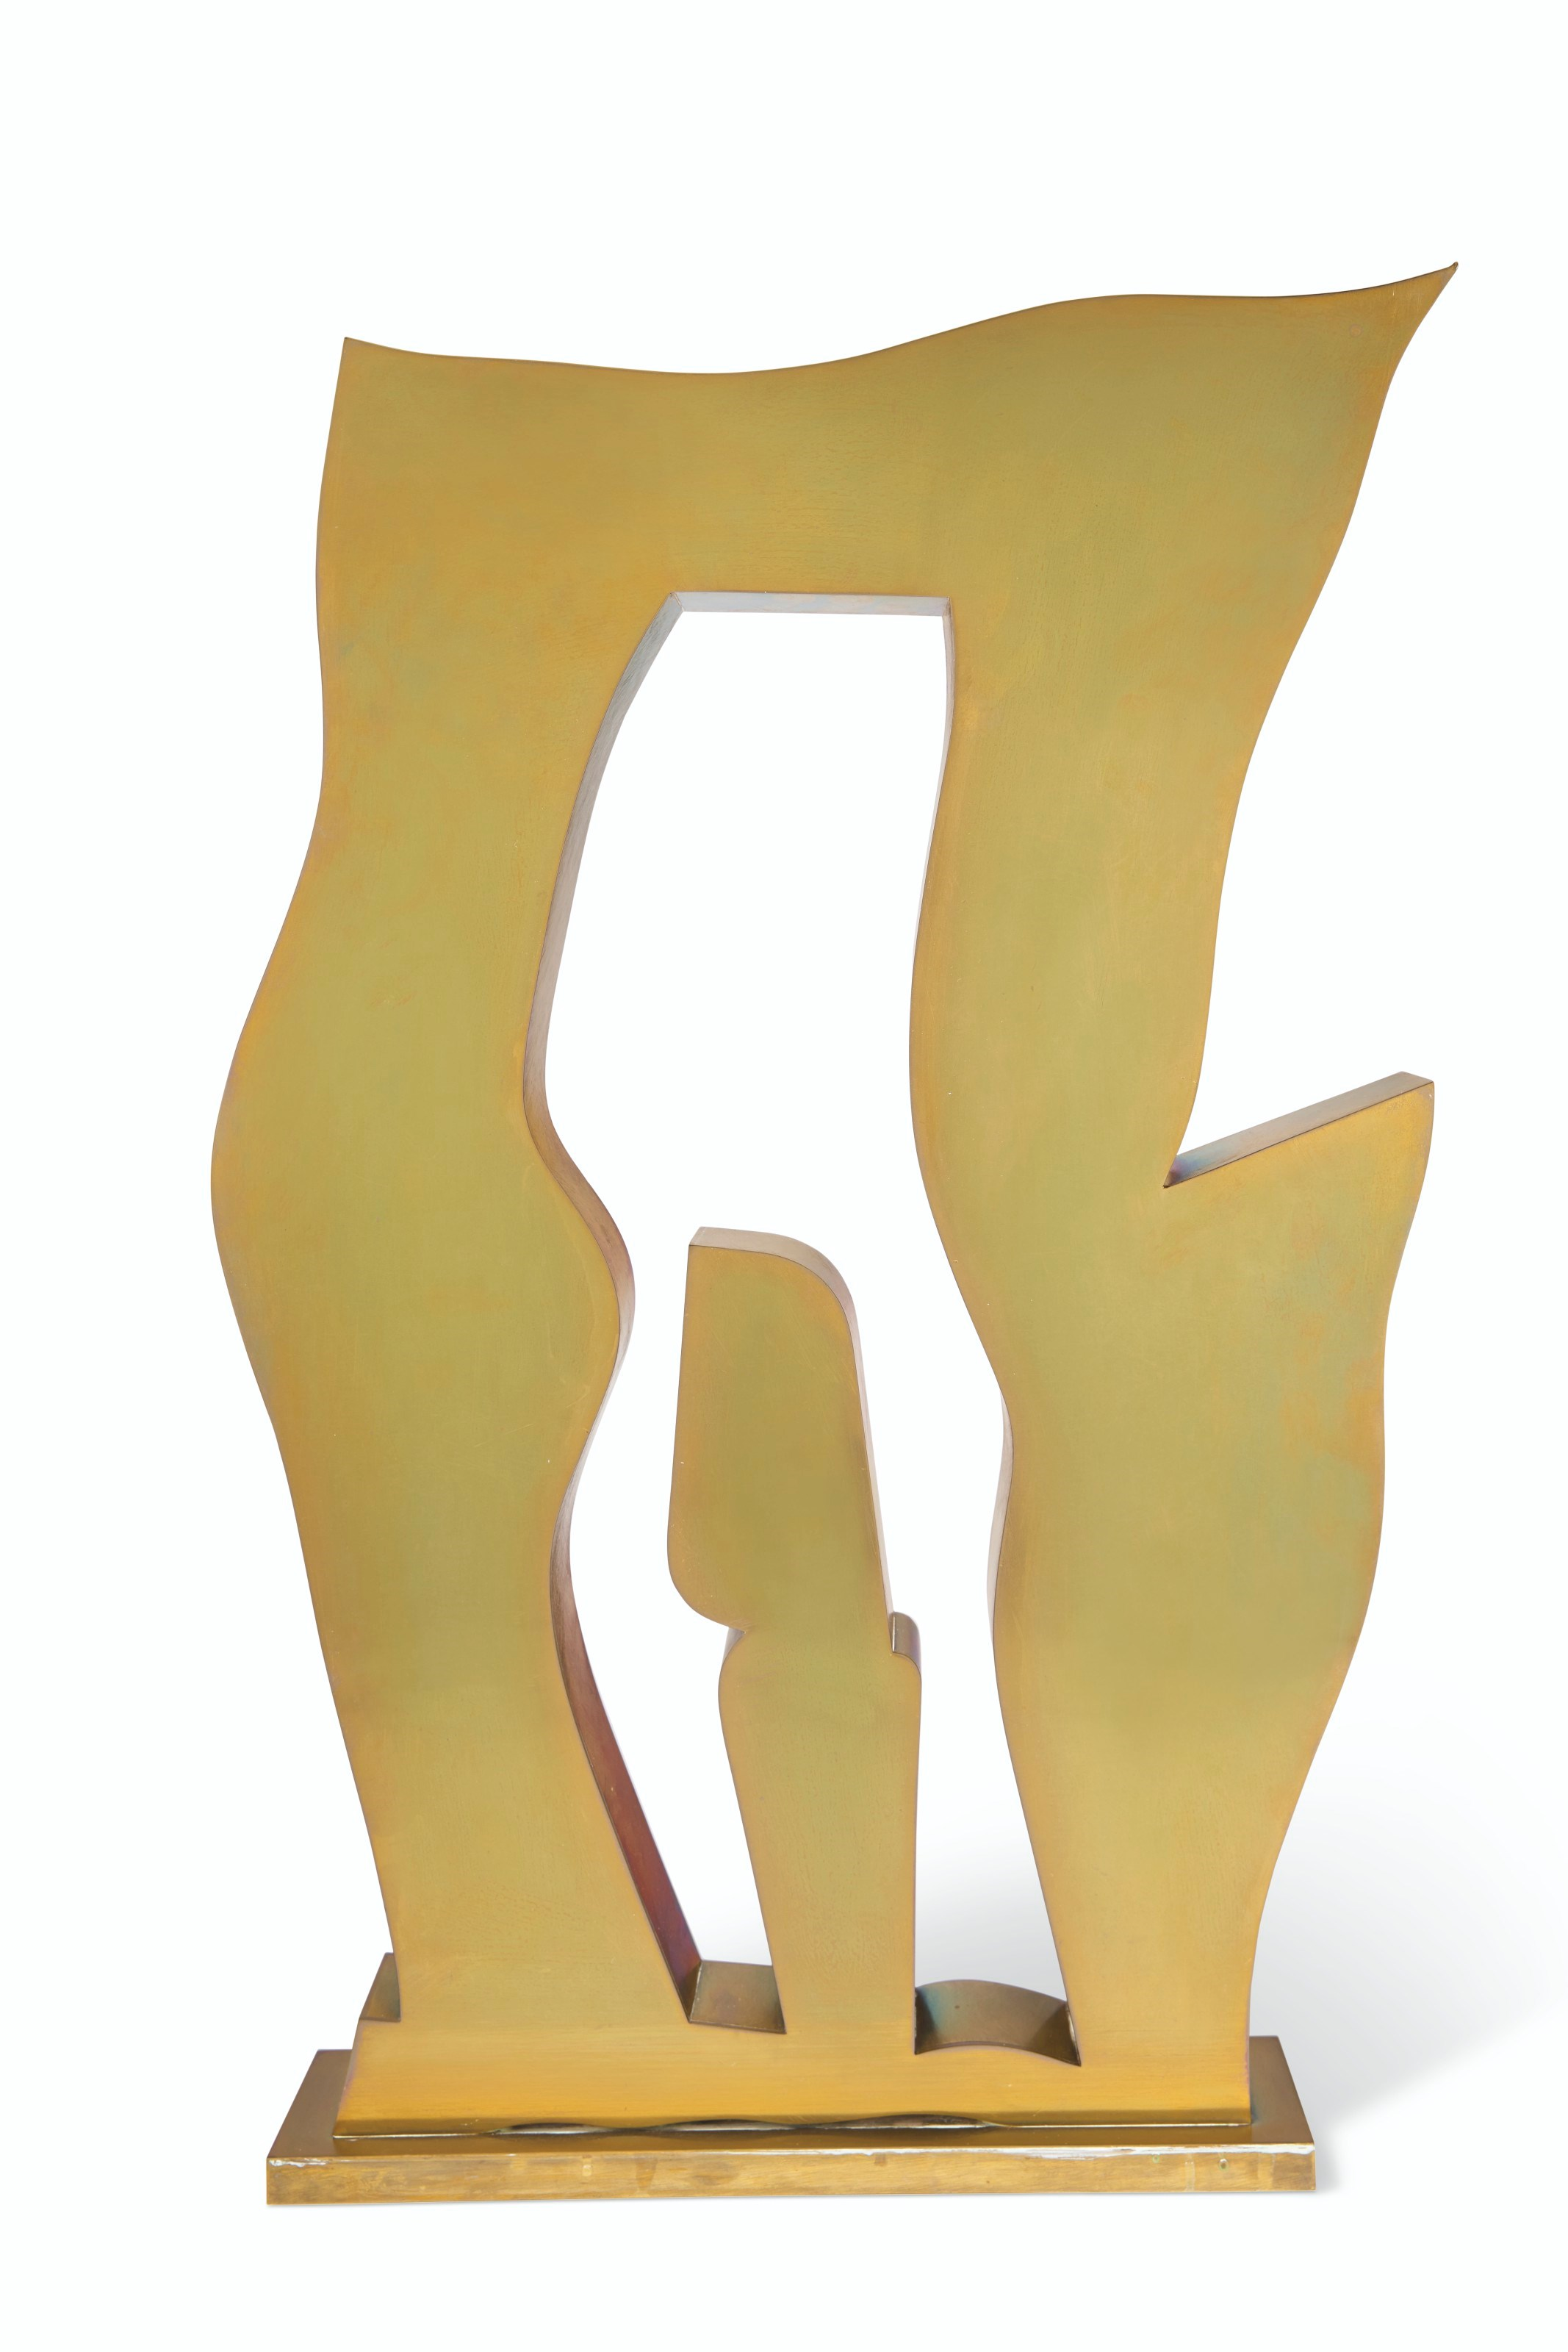 Jean (Hans) Arp (1895-1965), Objet sur le seuil, conceived and cast in 1959. Polished brass. Height 27⅜ in (69.5 cm). Estimate $40,000-60,000. Offered in Impressionist and Modern Art Day Sale on 14 May at Christie's in New York